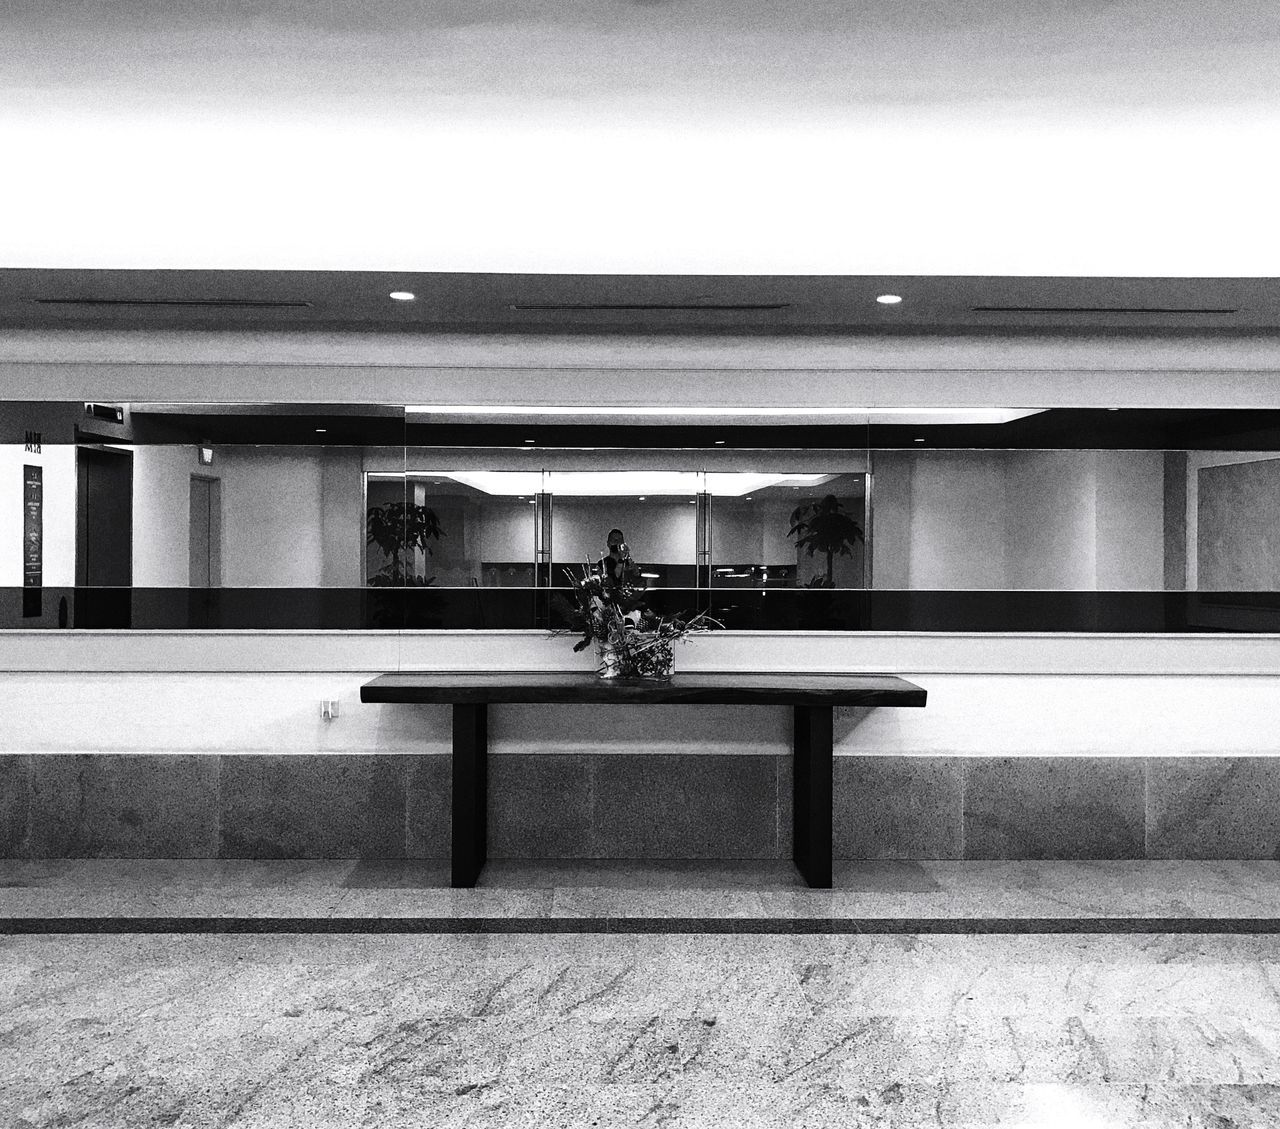 Minimalist decor. Architecture Indoors  Black&white Black & White Black And White Blackandwhite Black And White Photography Blackandwhite Photography Wall Art Interior Design Light And Shadow Light Taking Photos Check This Out EyeEm Best Shots Open Edit OpenEdit EyeEm Gallery First Eyeem Photo